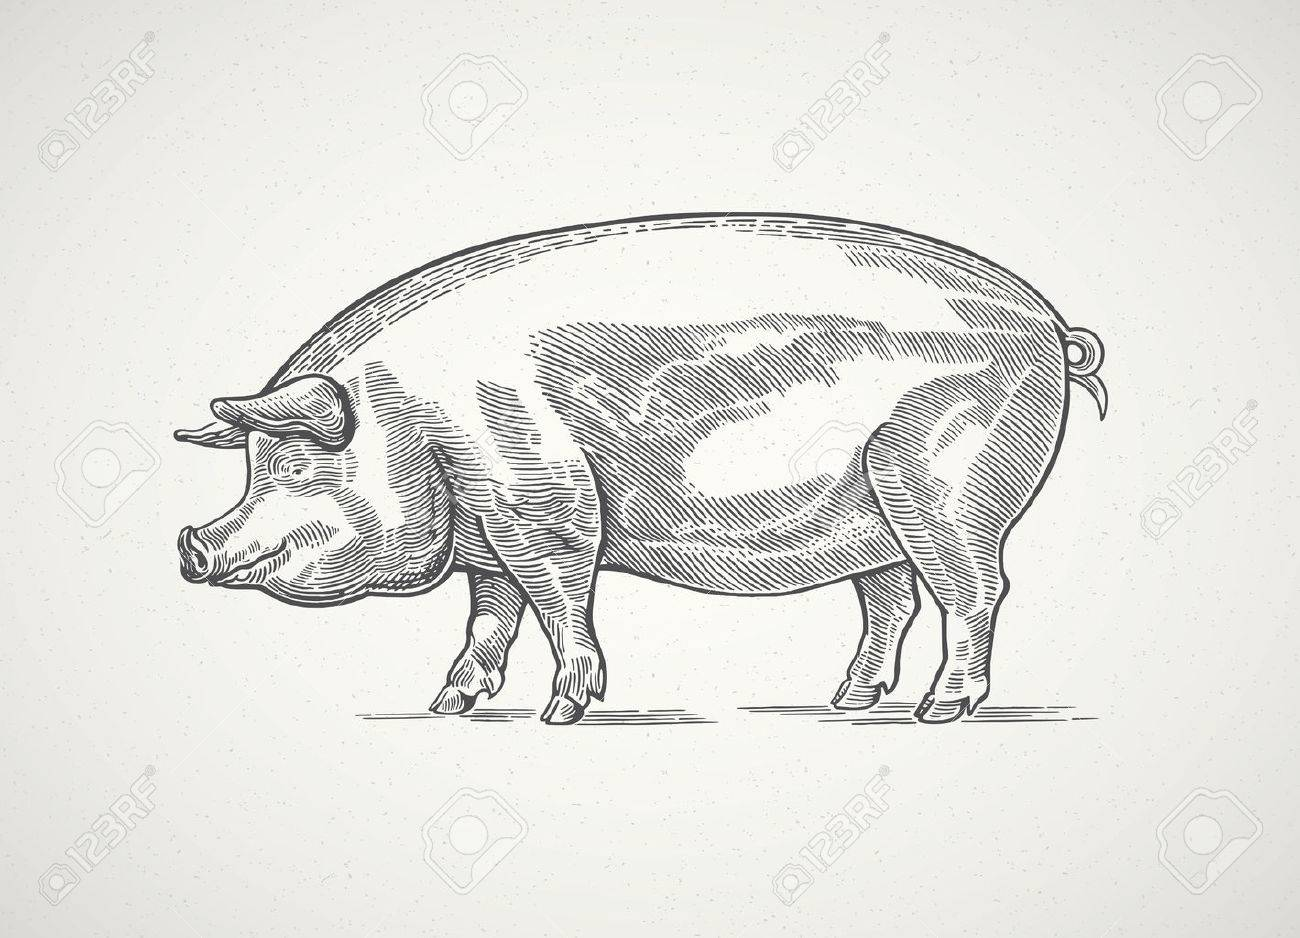 Pig in graphic style, hand drawn illustration. - 62337422